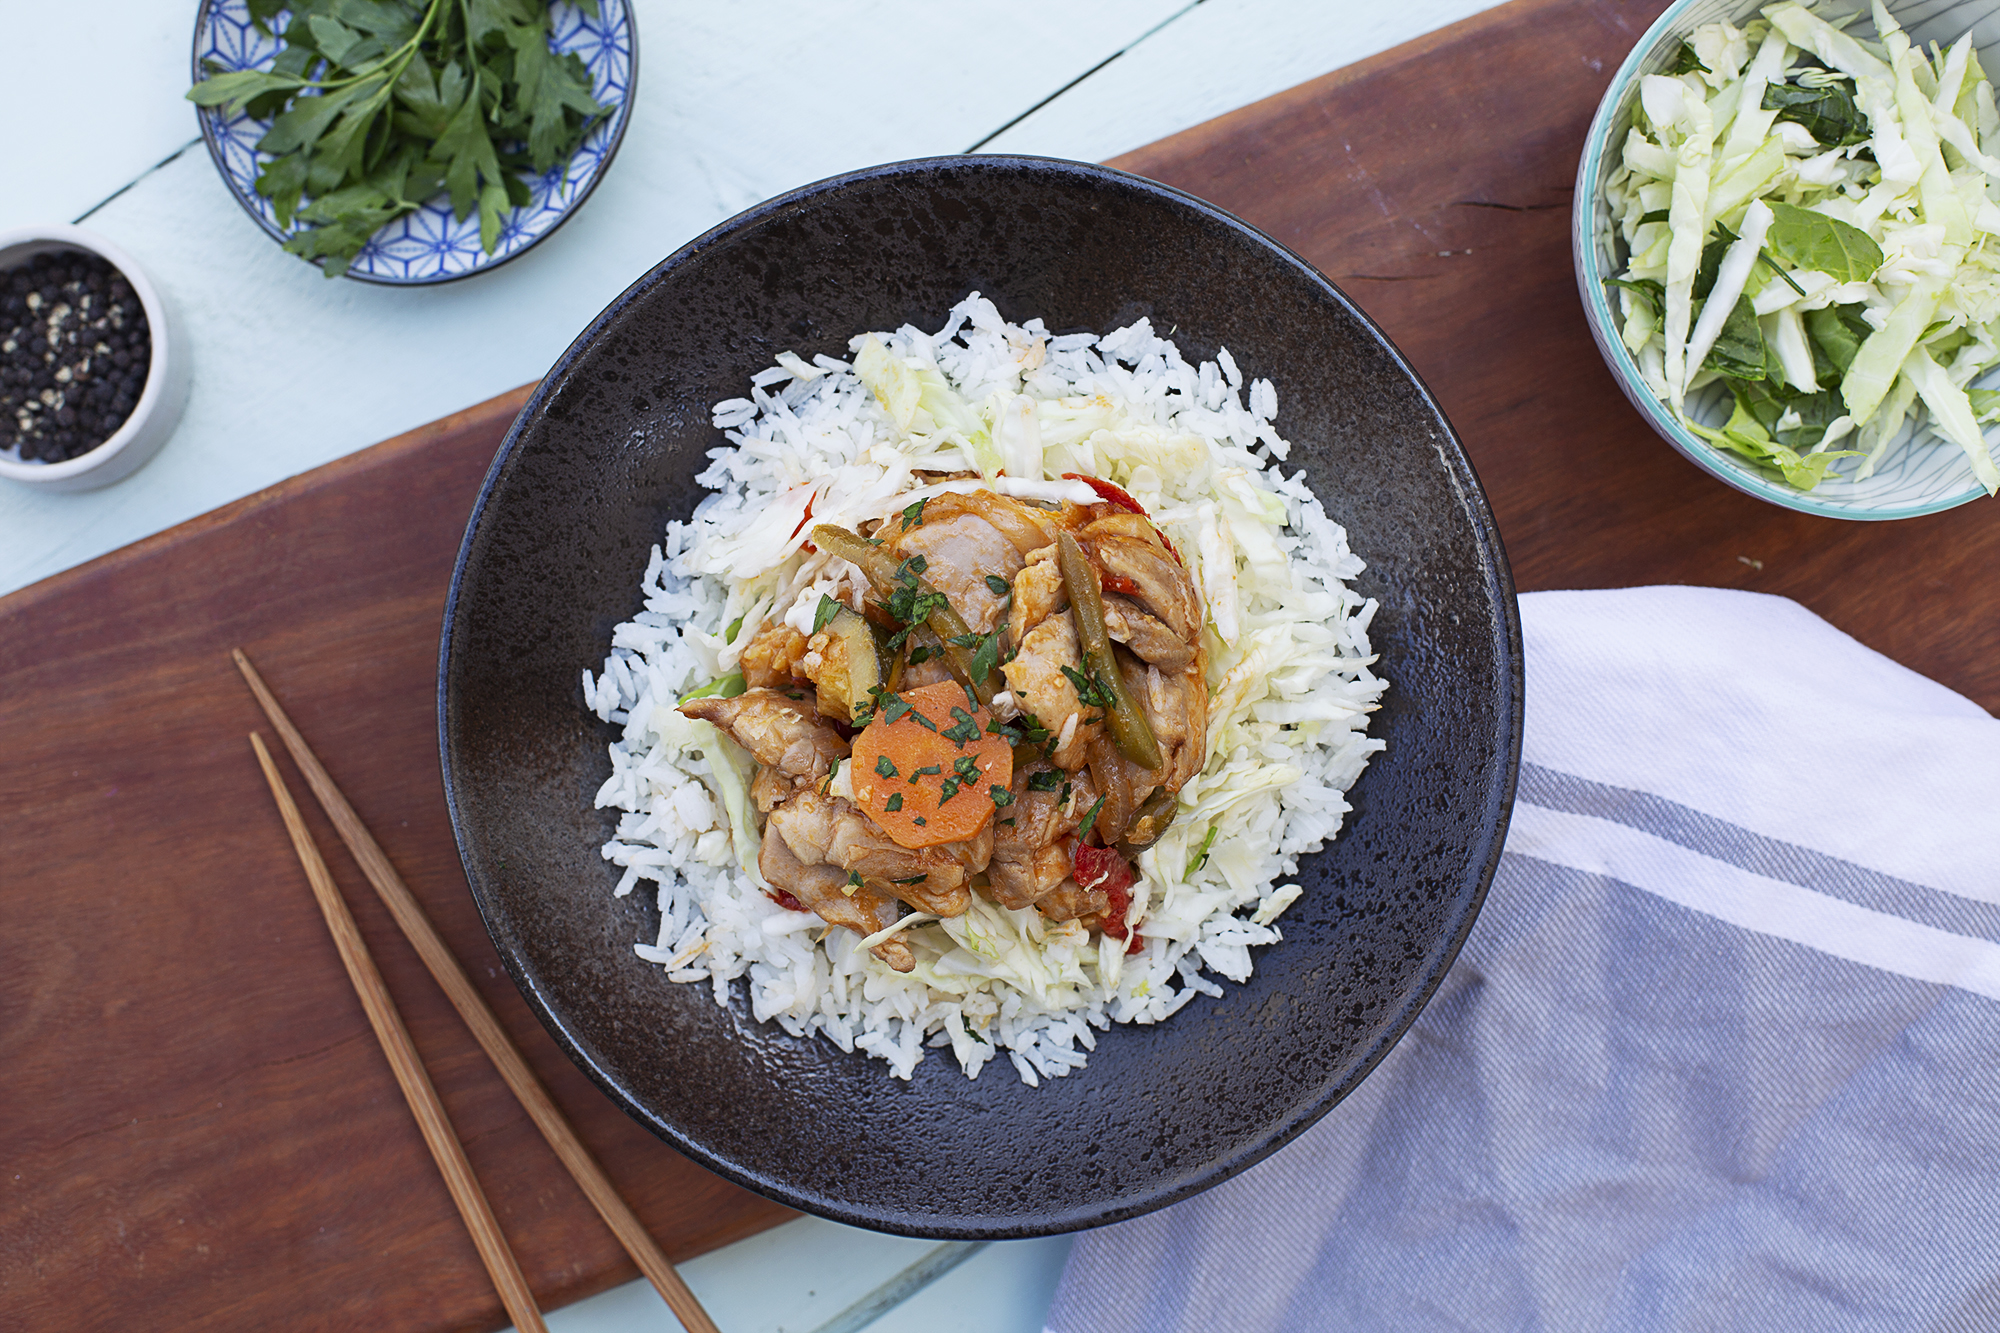 194. Sweet & Sour Pork with Green beans, capsicum, pineapple, zucchini and onion served with rice and steamed cabbage